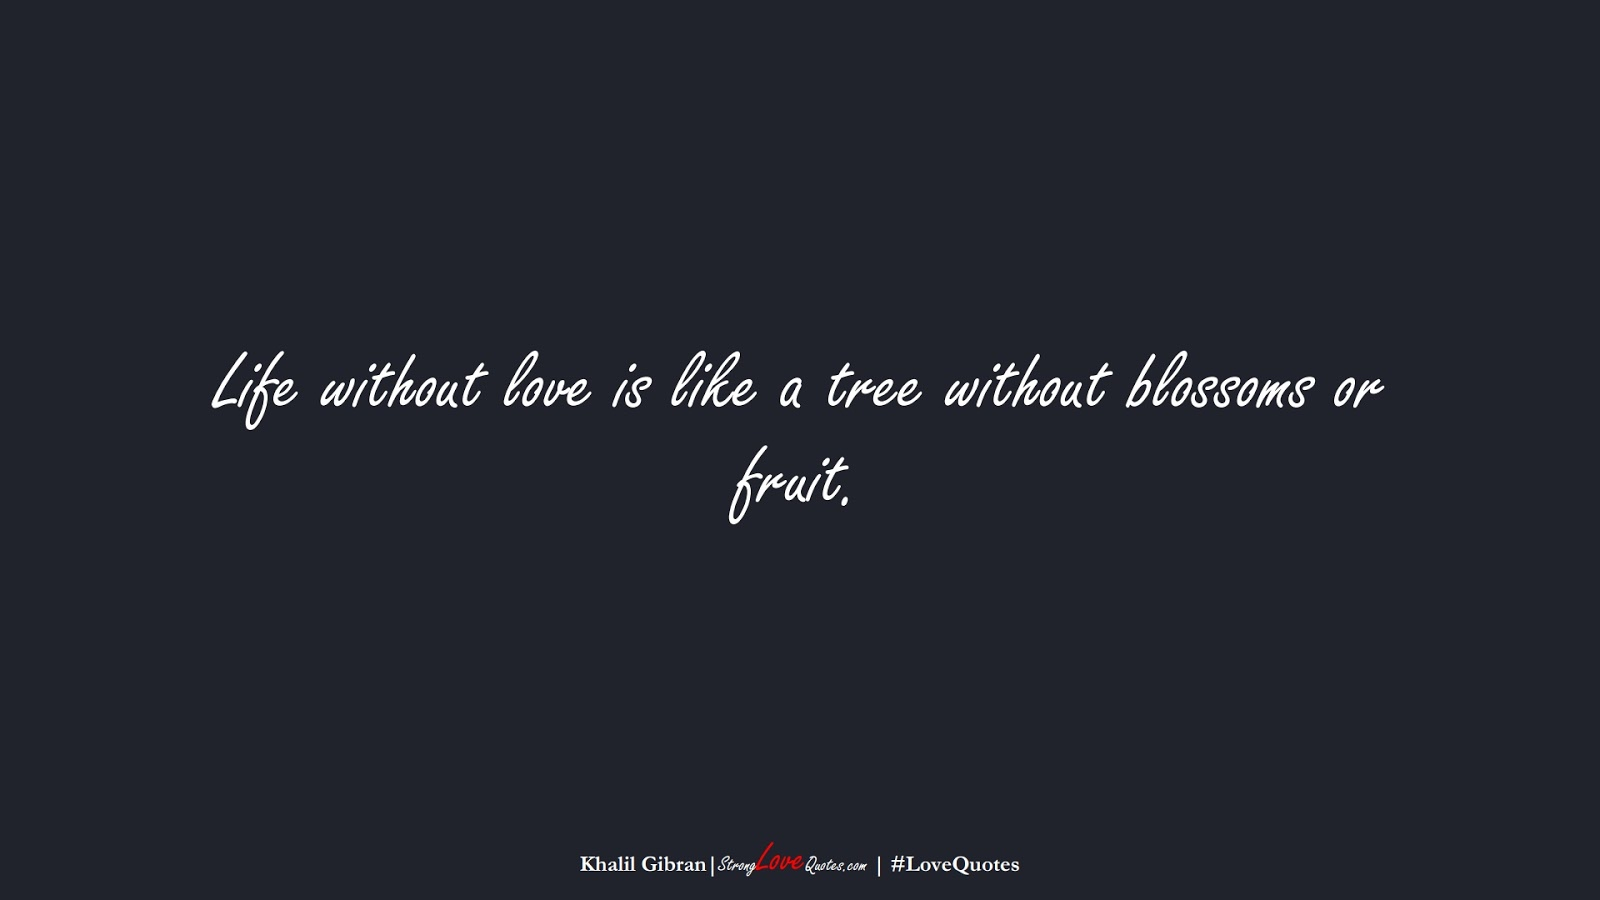 Life without love is like a tree without blossoms or fruit. (Khalil Gibran);  #LoveQuotes